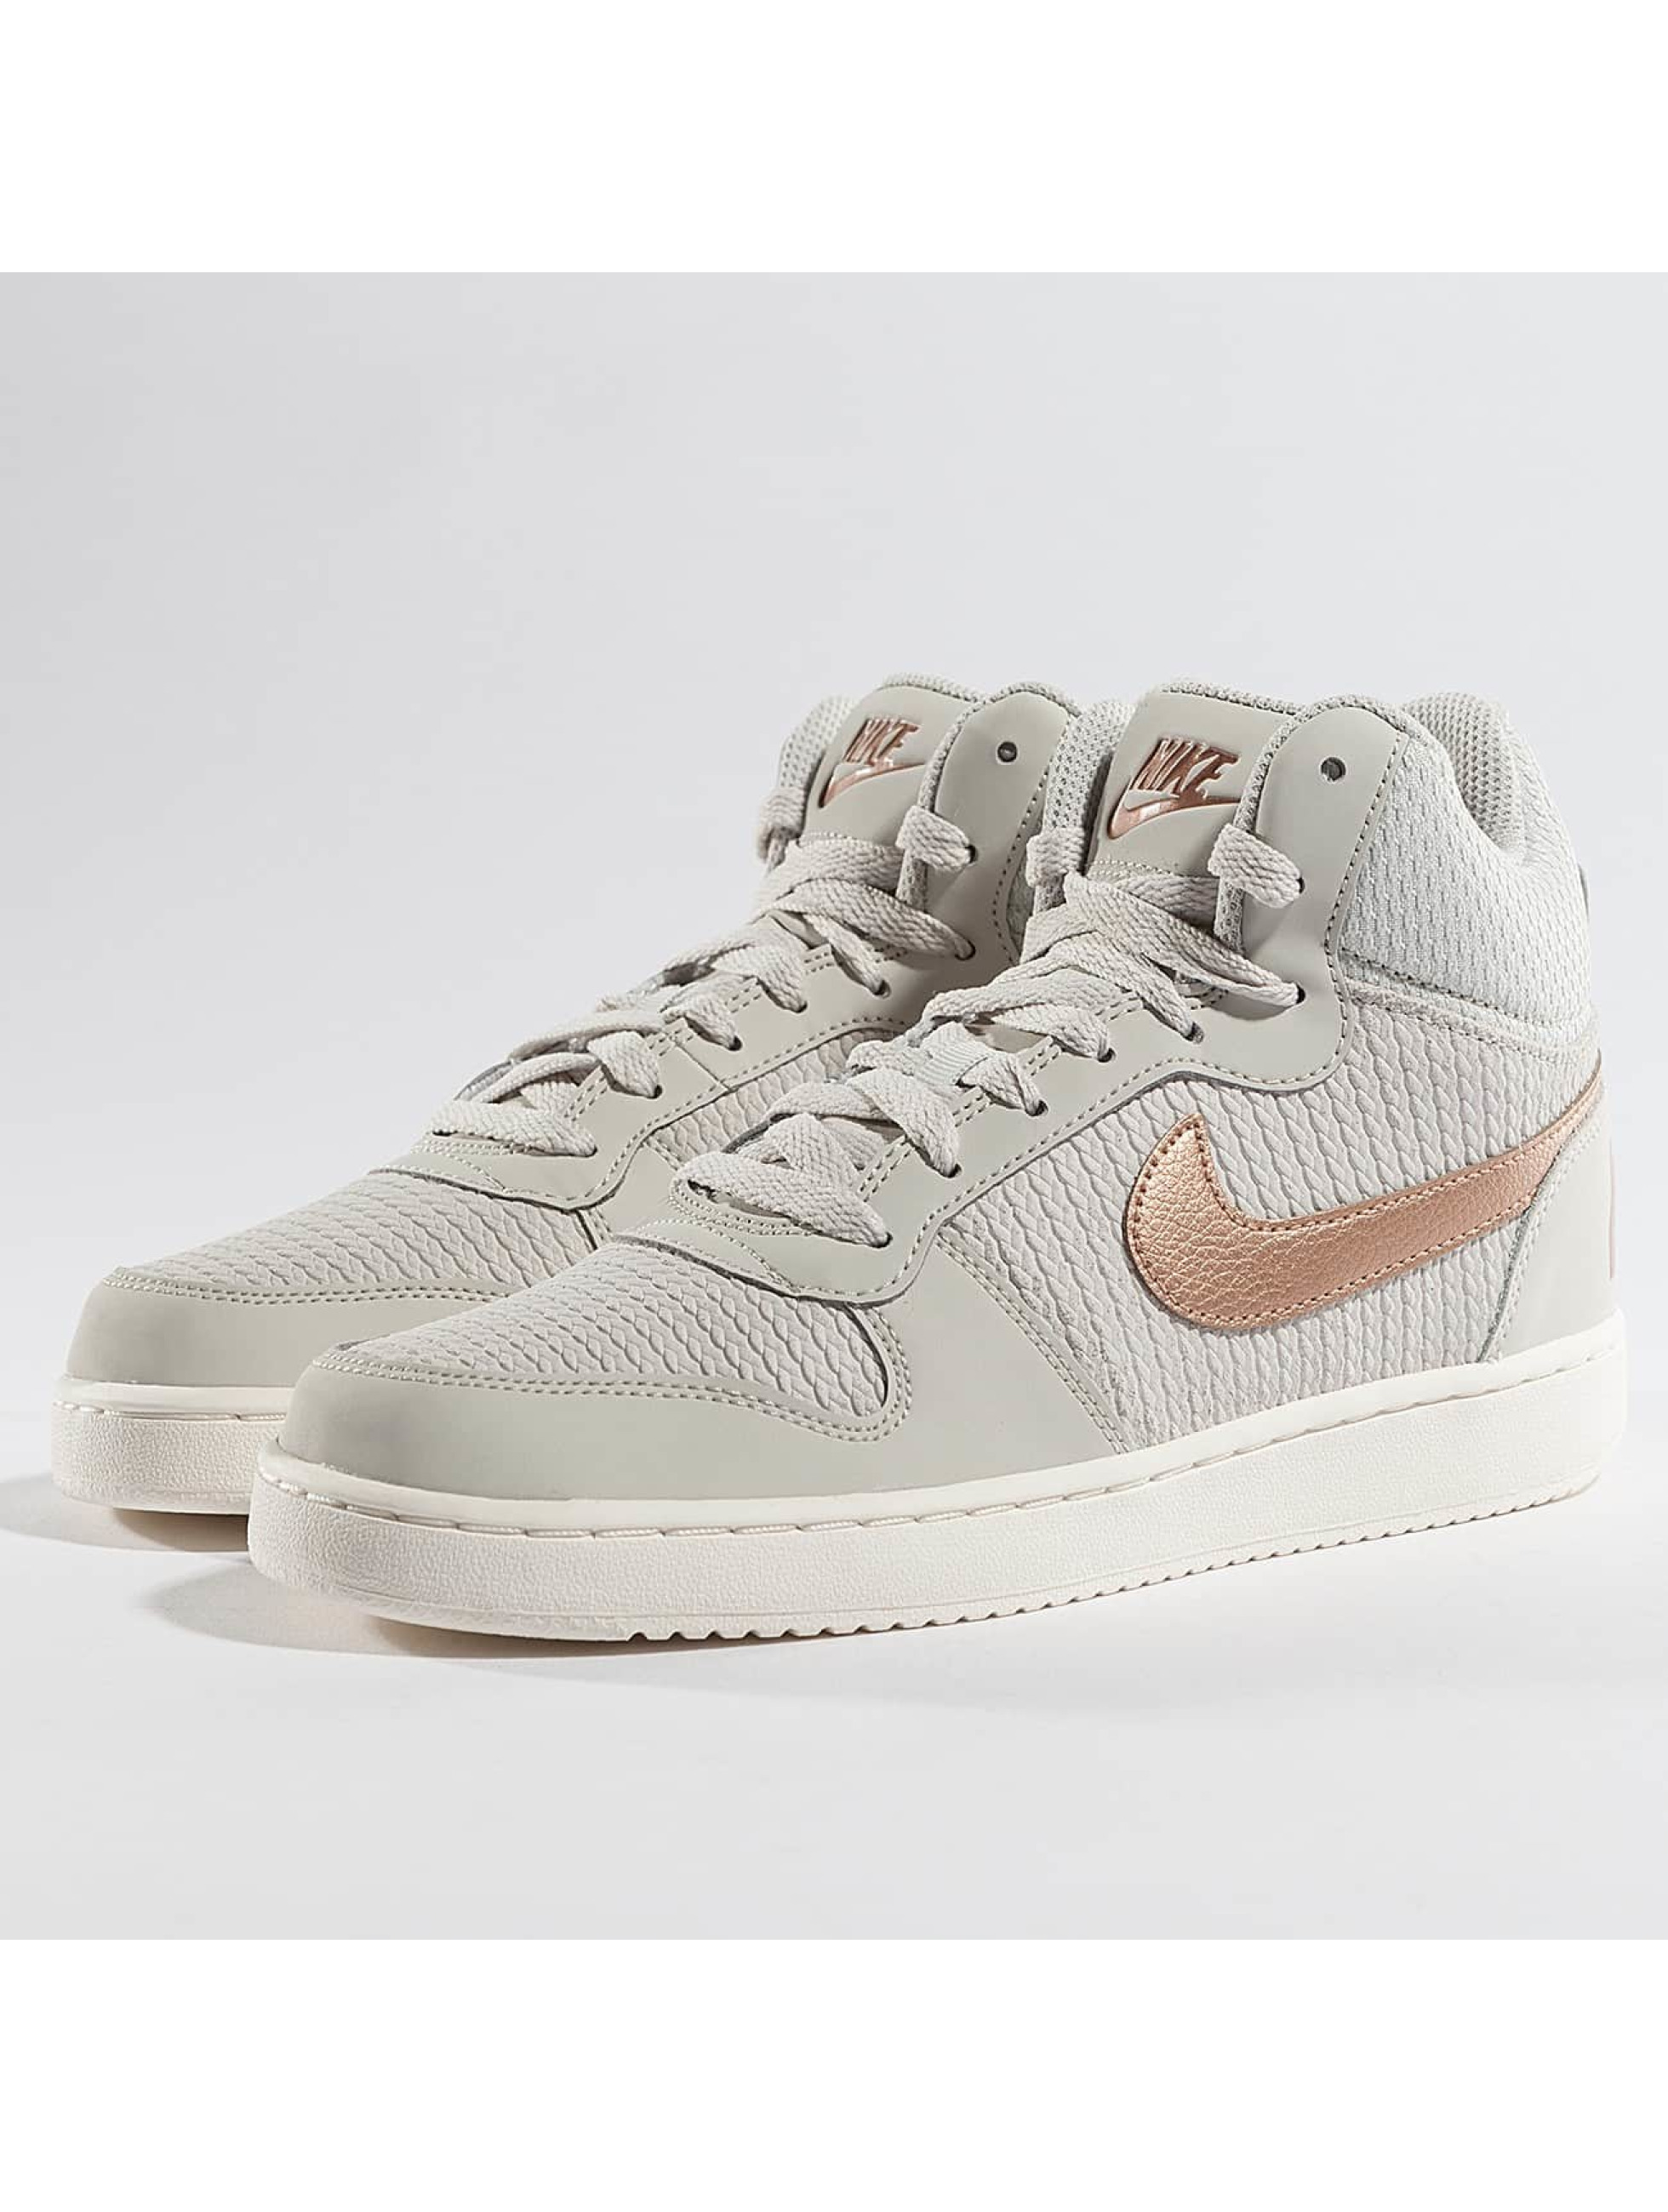 Nike Sneakers Recreation Mid-Top Premium bezowy